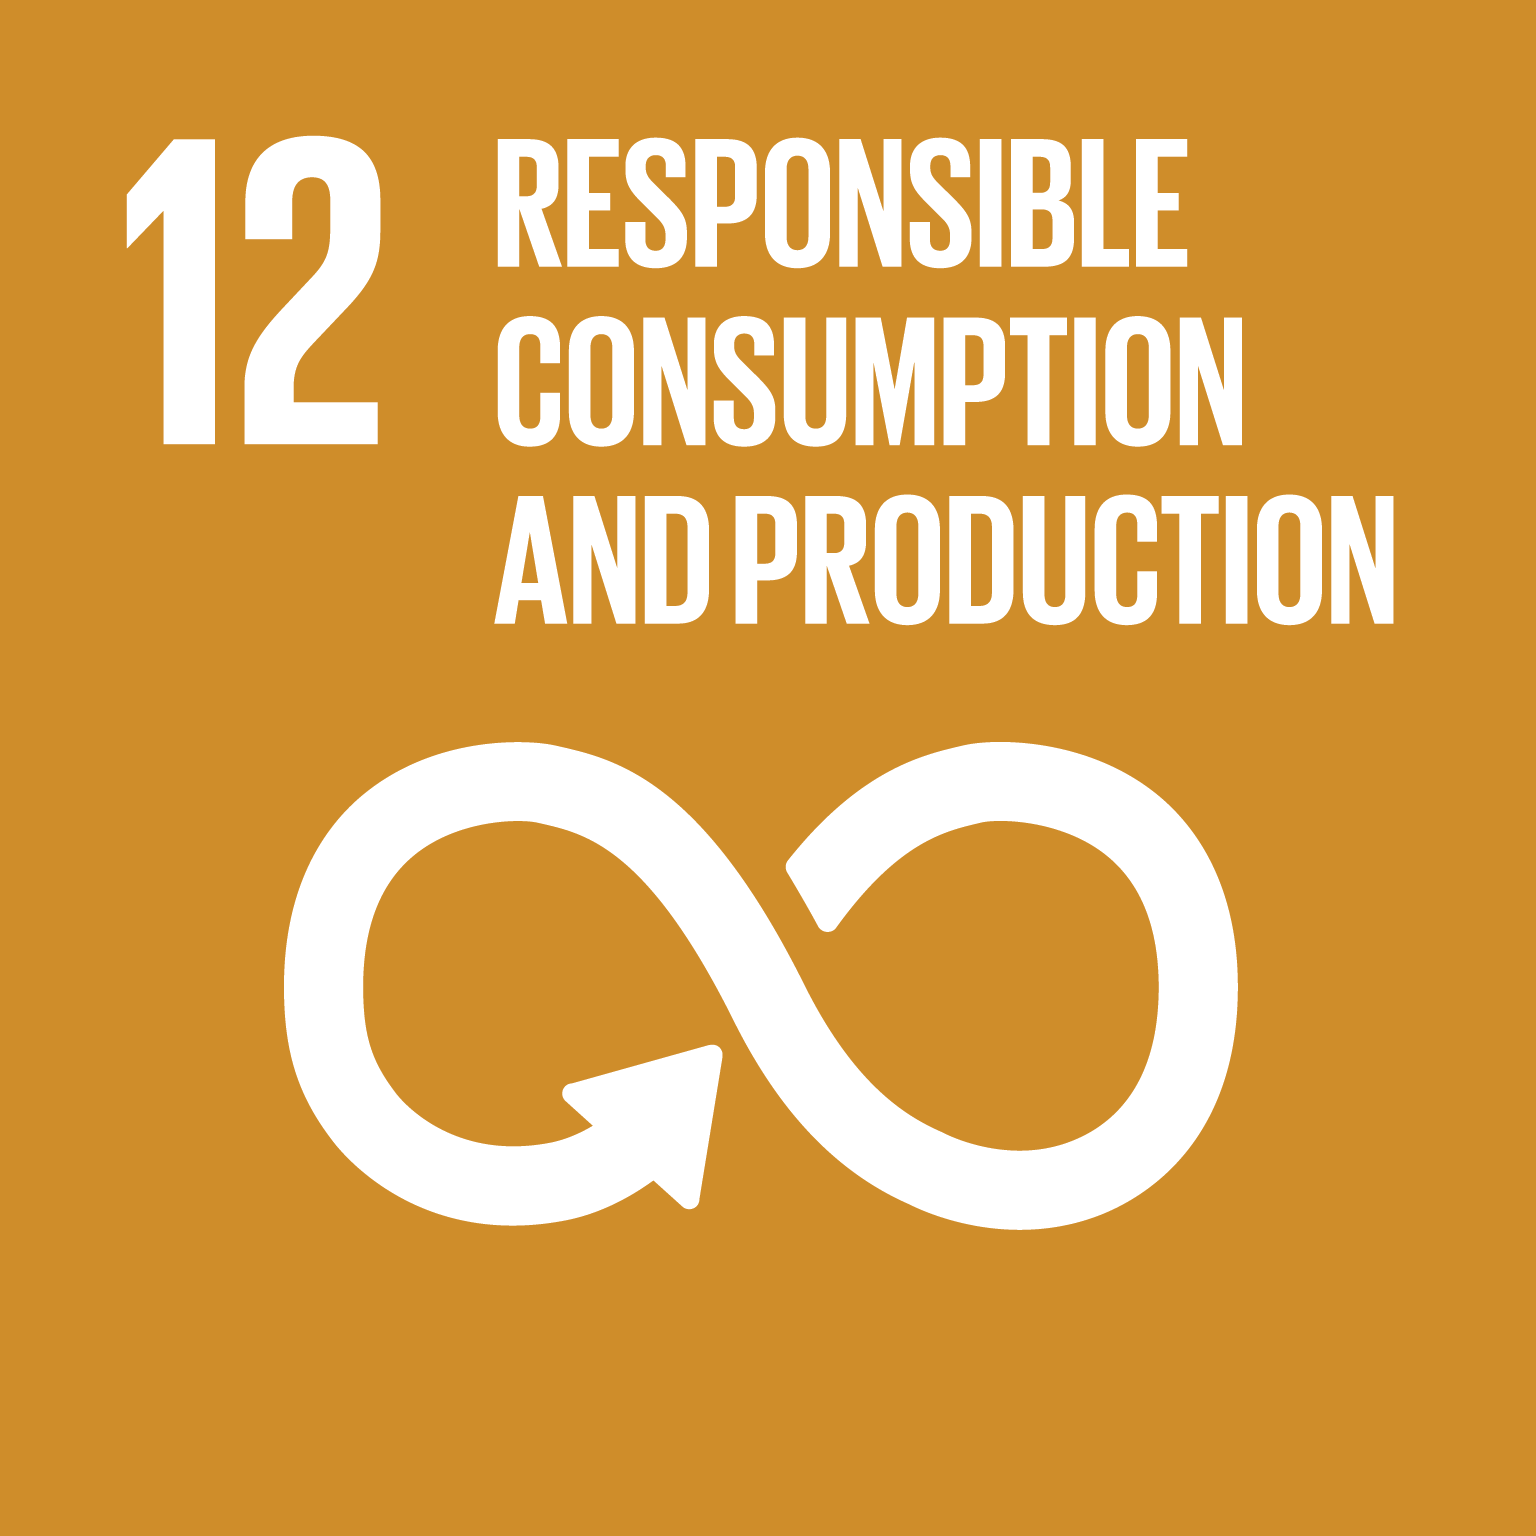 Icona Responsible consumption and production con simbolo dell'infinito